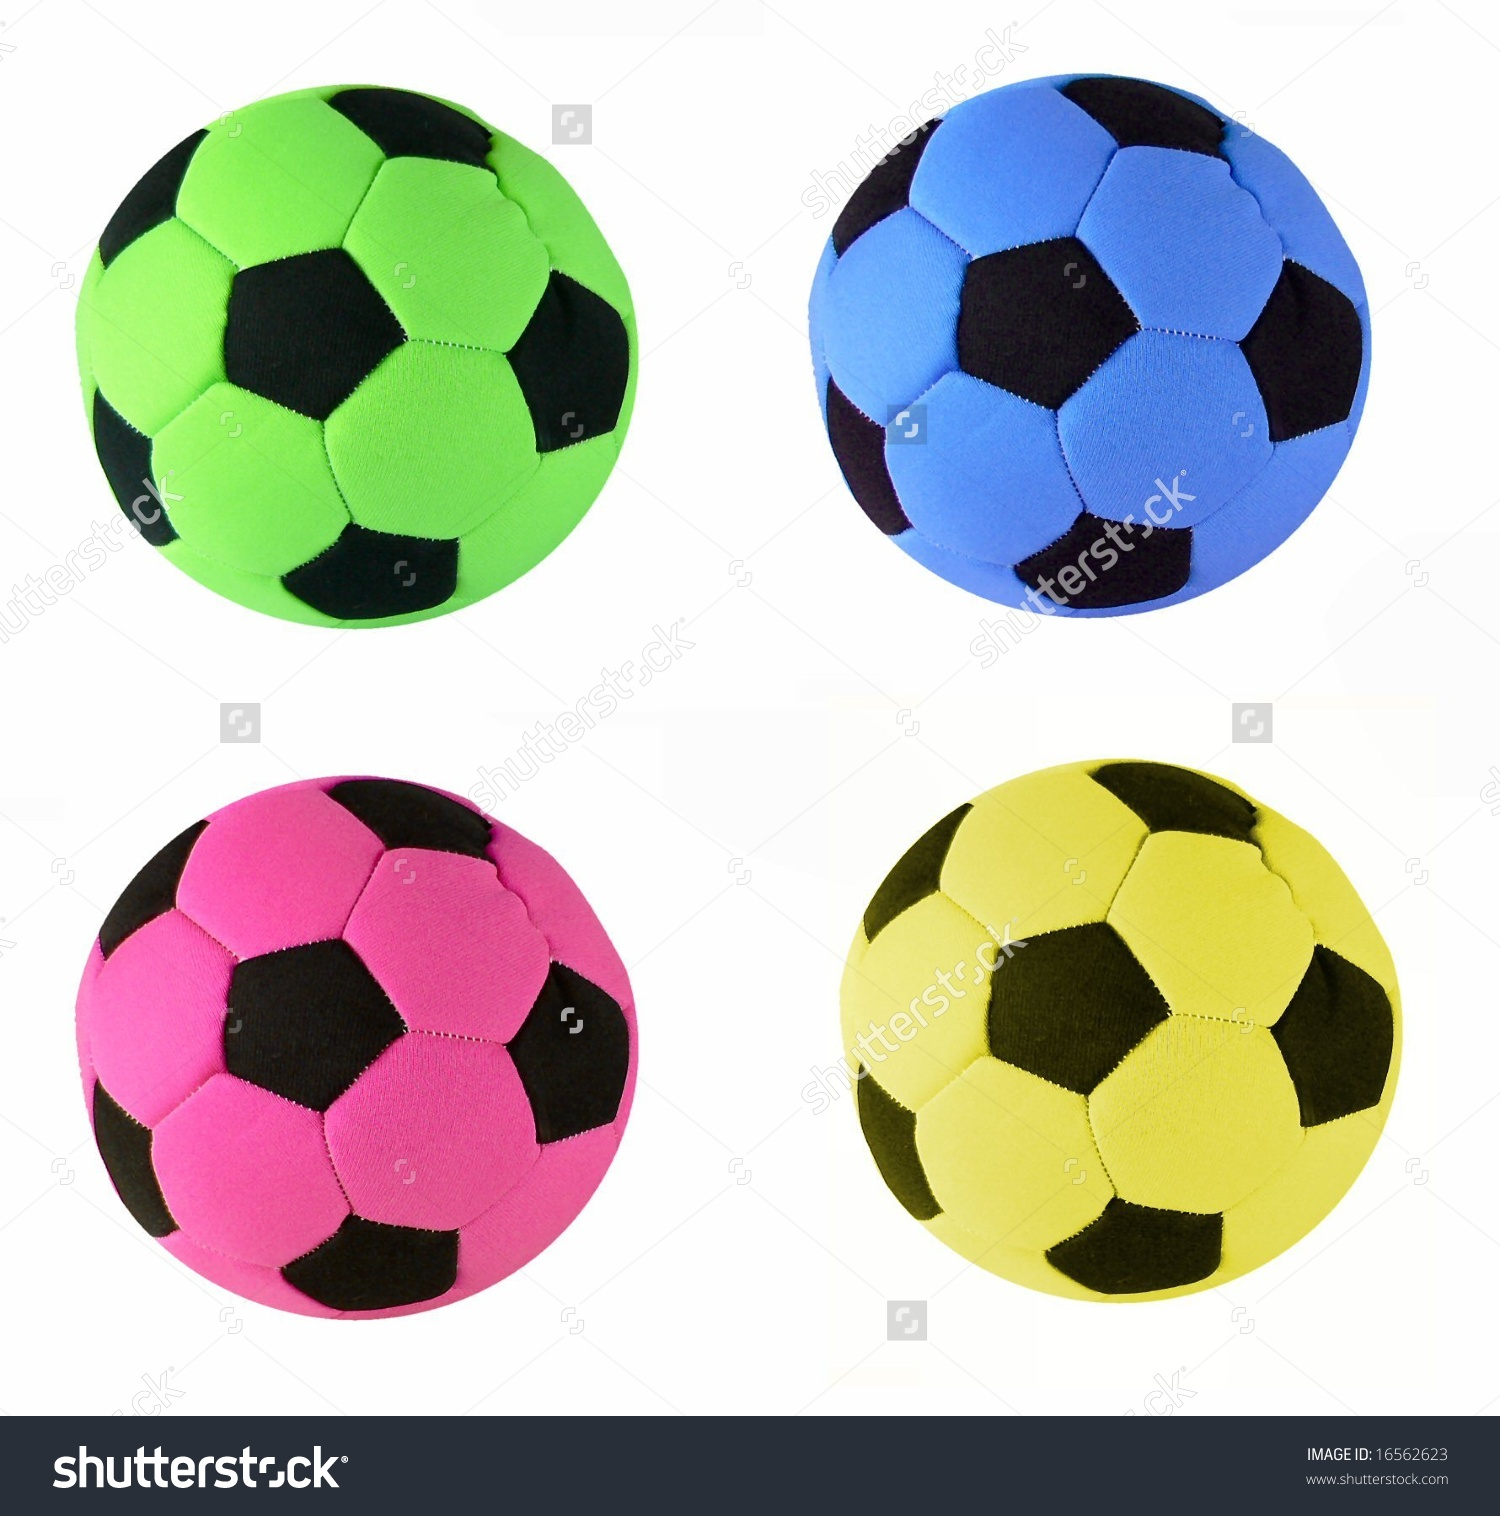 Color soccer ball clipart picture free download Pink soccer ball clipart - ClipartFest picture free download